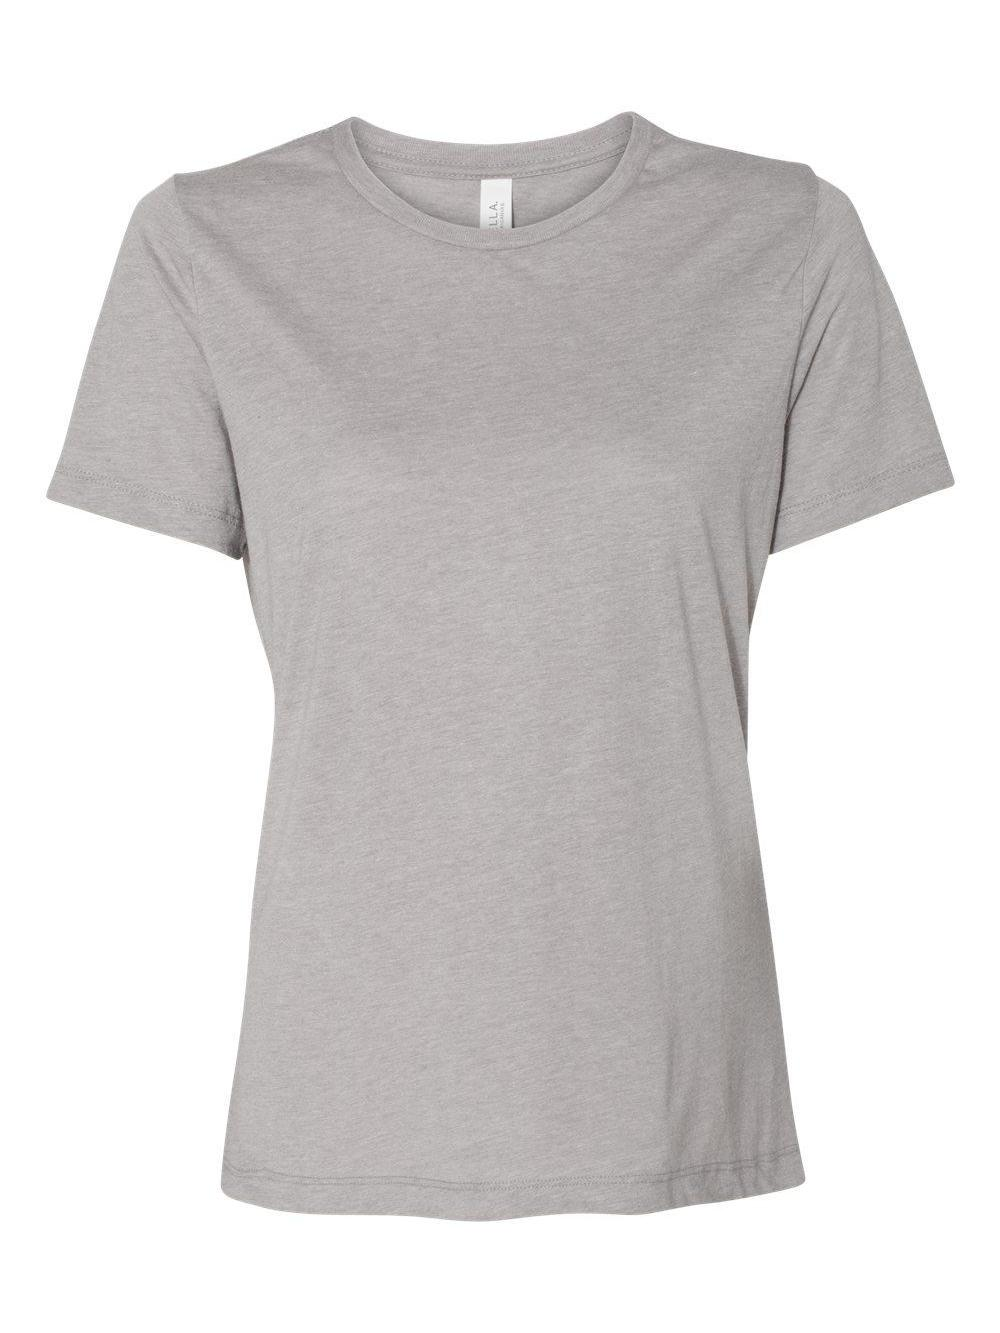 Bella-Canvas-Women-039-s-Relaxed-Short-Sleeve-Jersey-Tee-6400 thumbnail 3